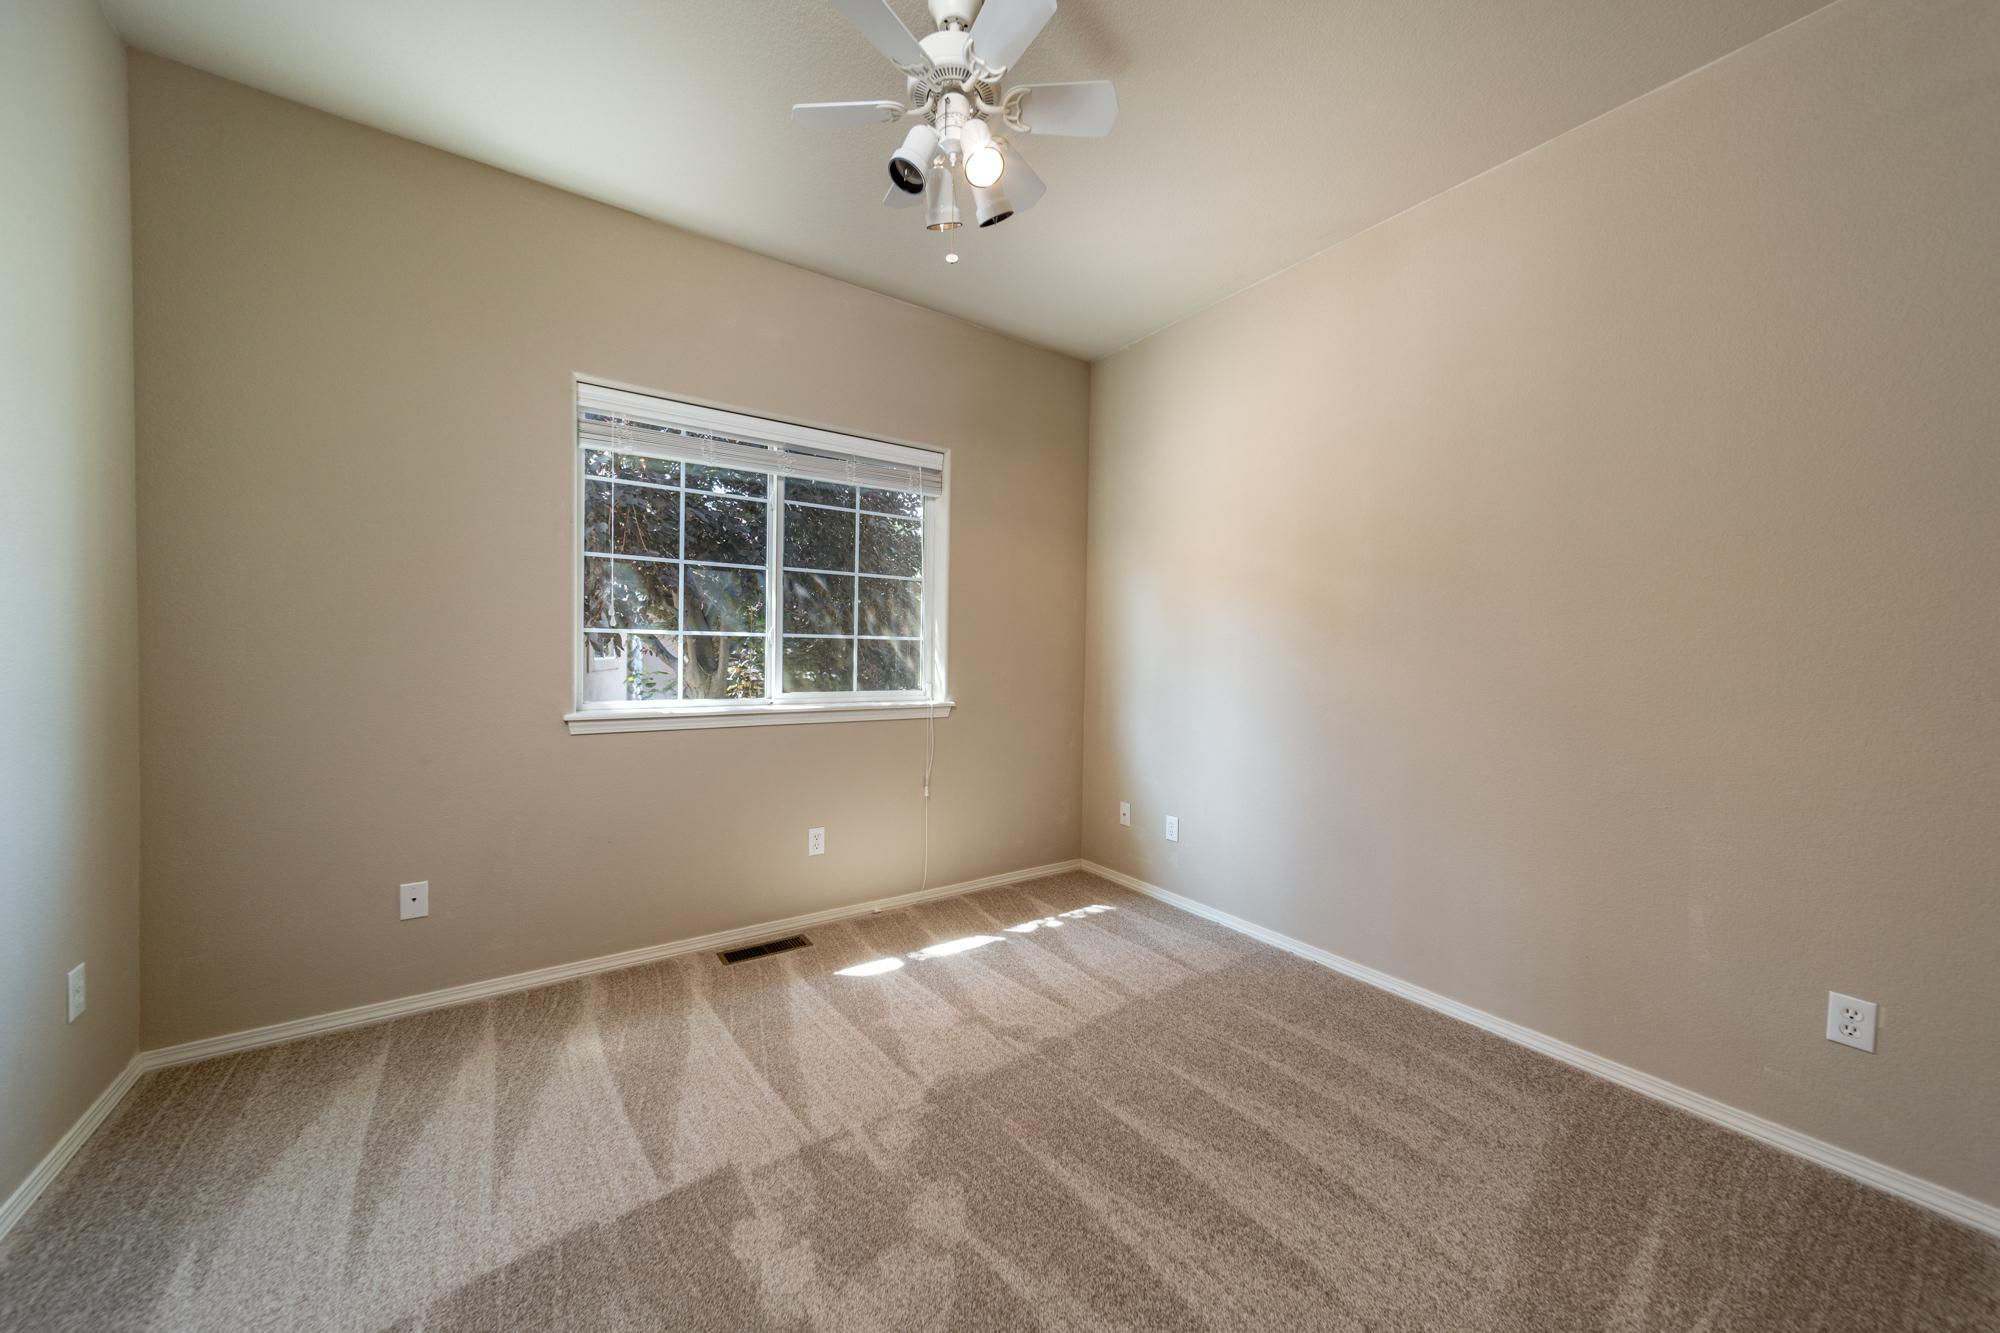 3rd Bedroom with Ceiling Fan - 3731 Buffalo Ln Montrose, CO 81403 - Atha Team Golf Property